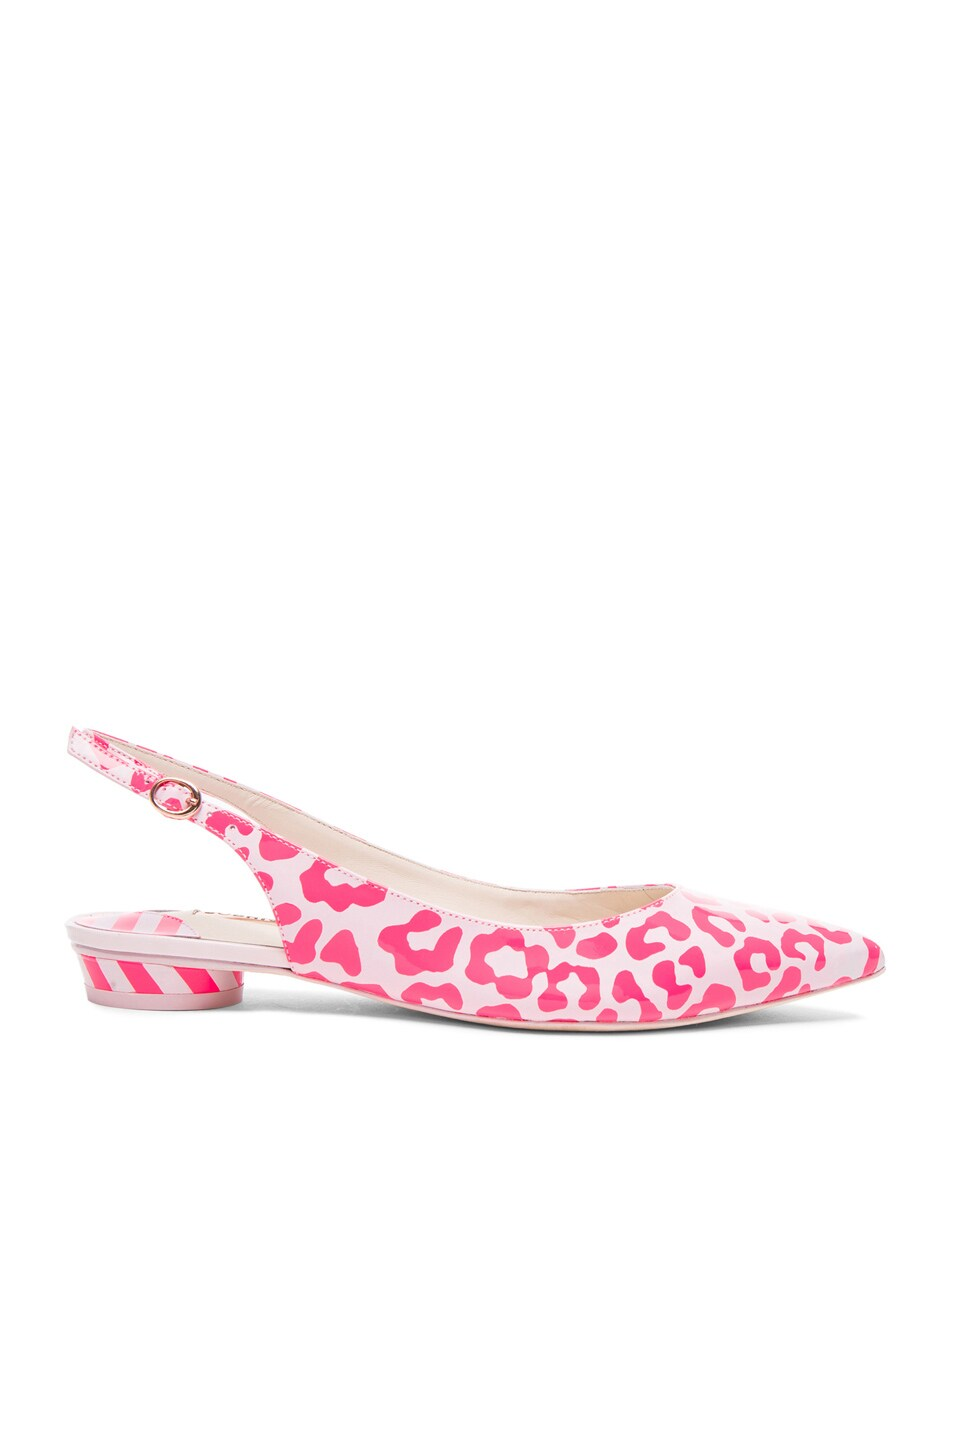 Image 1 of Sophia Webster Tyra Patent Leather Leopard Flats in Pink